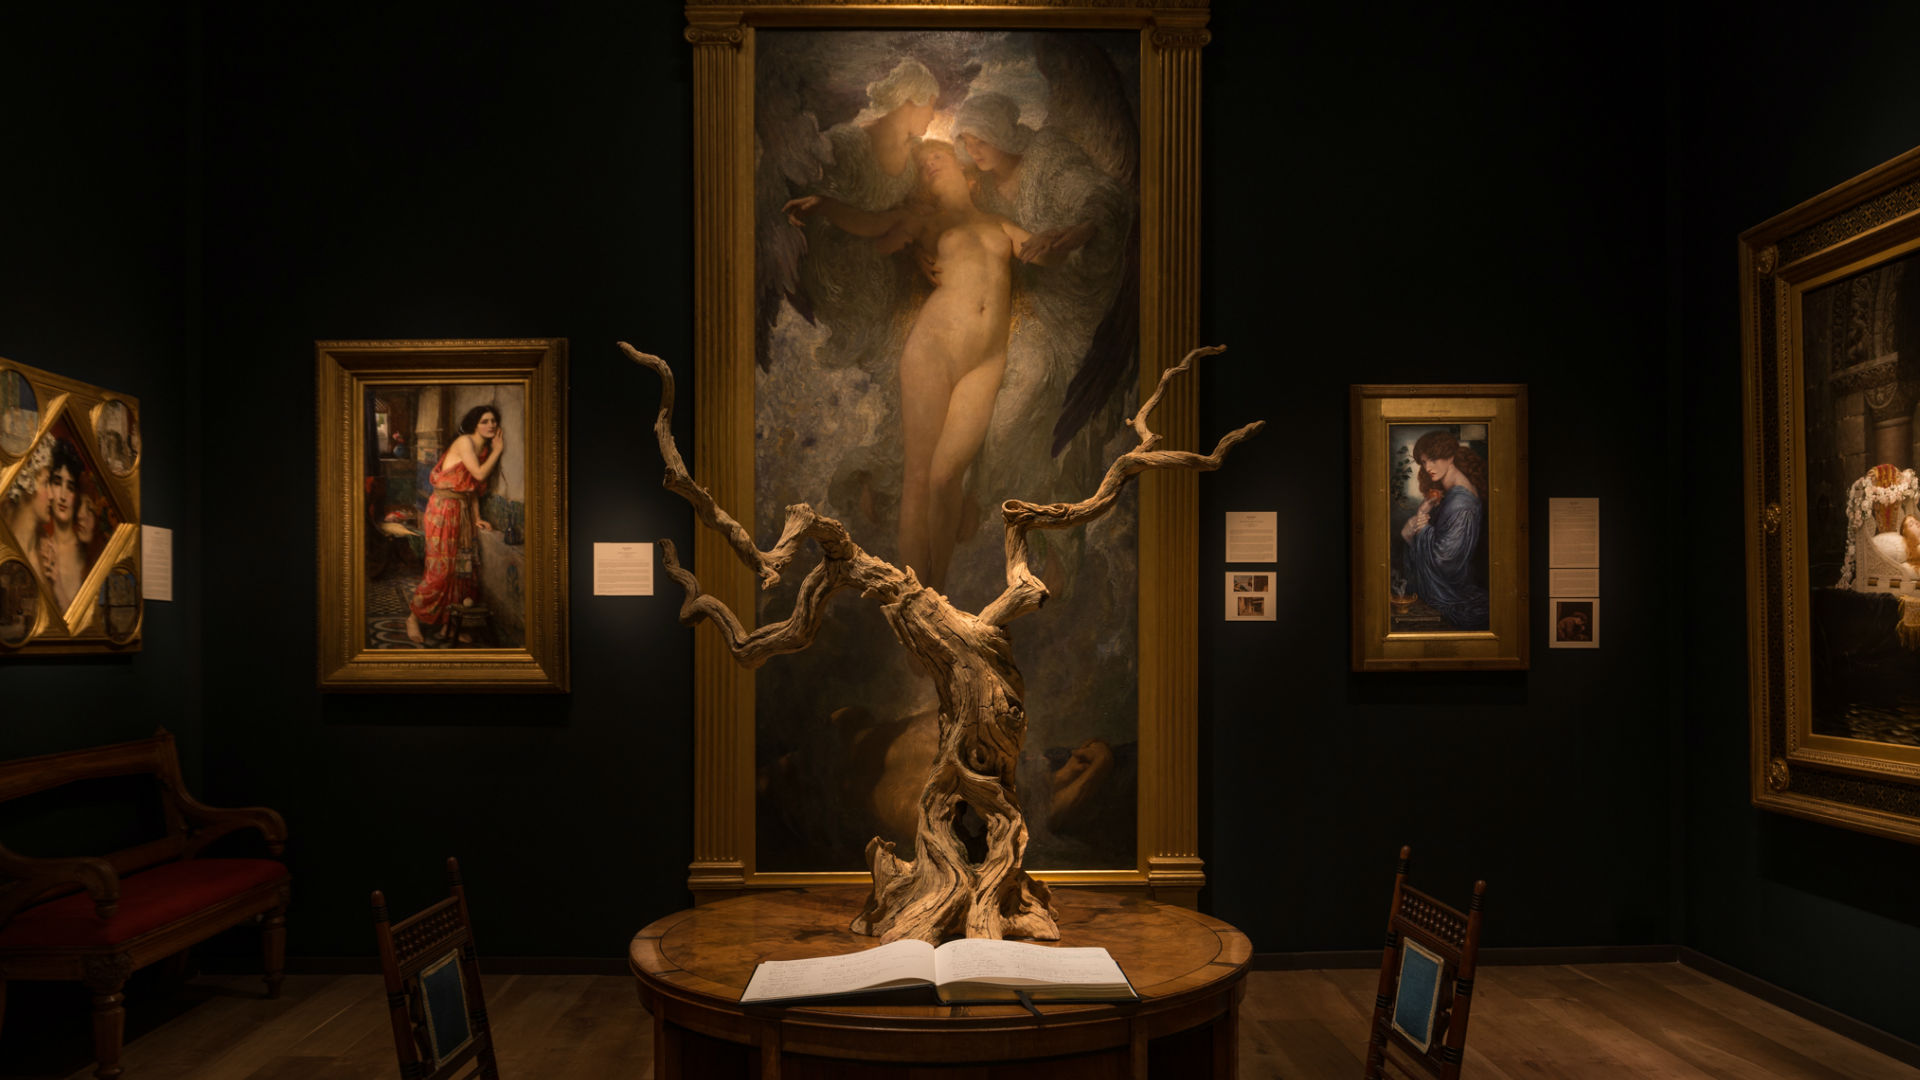 Sculptures, and art on show during Masterpiece 2018 at Royal Hospital Chelsea. Image courtesy of Masterpiece